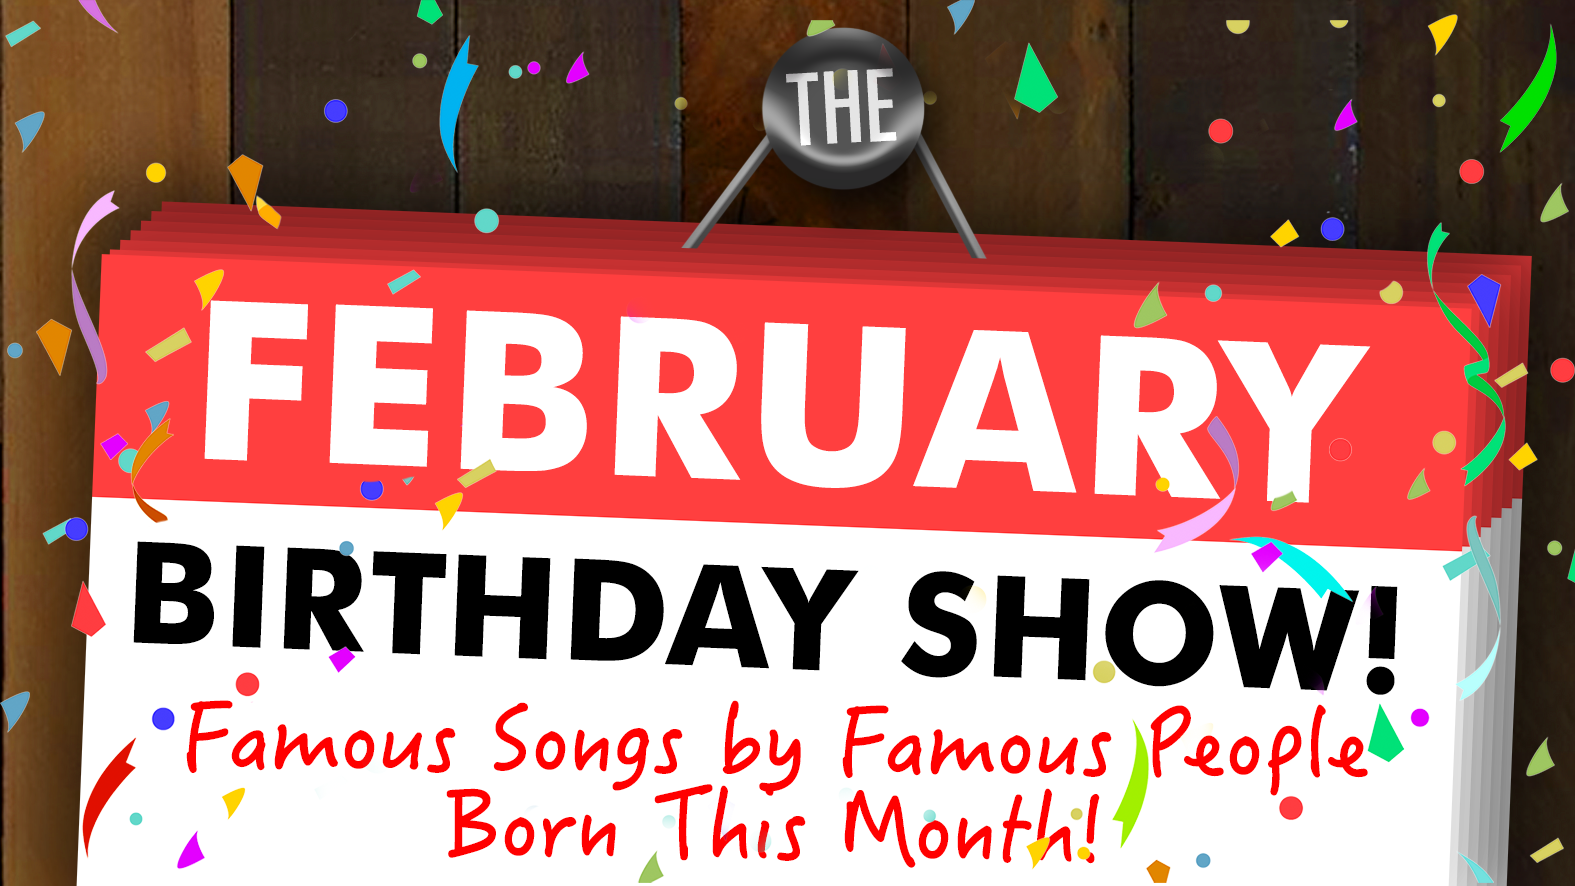 The February Birthday Show! Famous Songs by Famous People Born This Month!